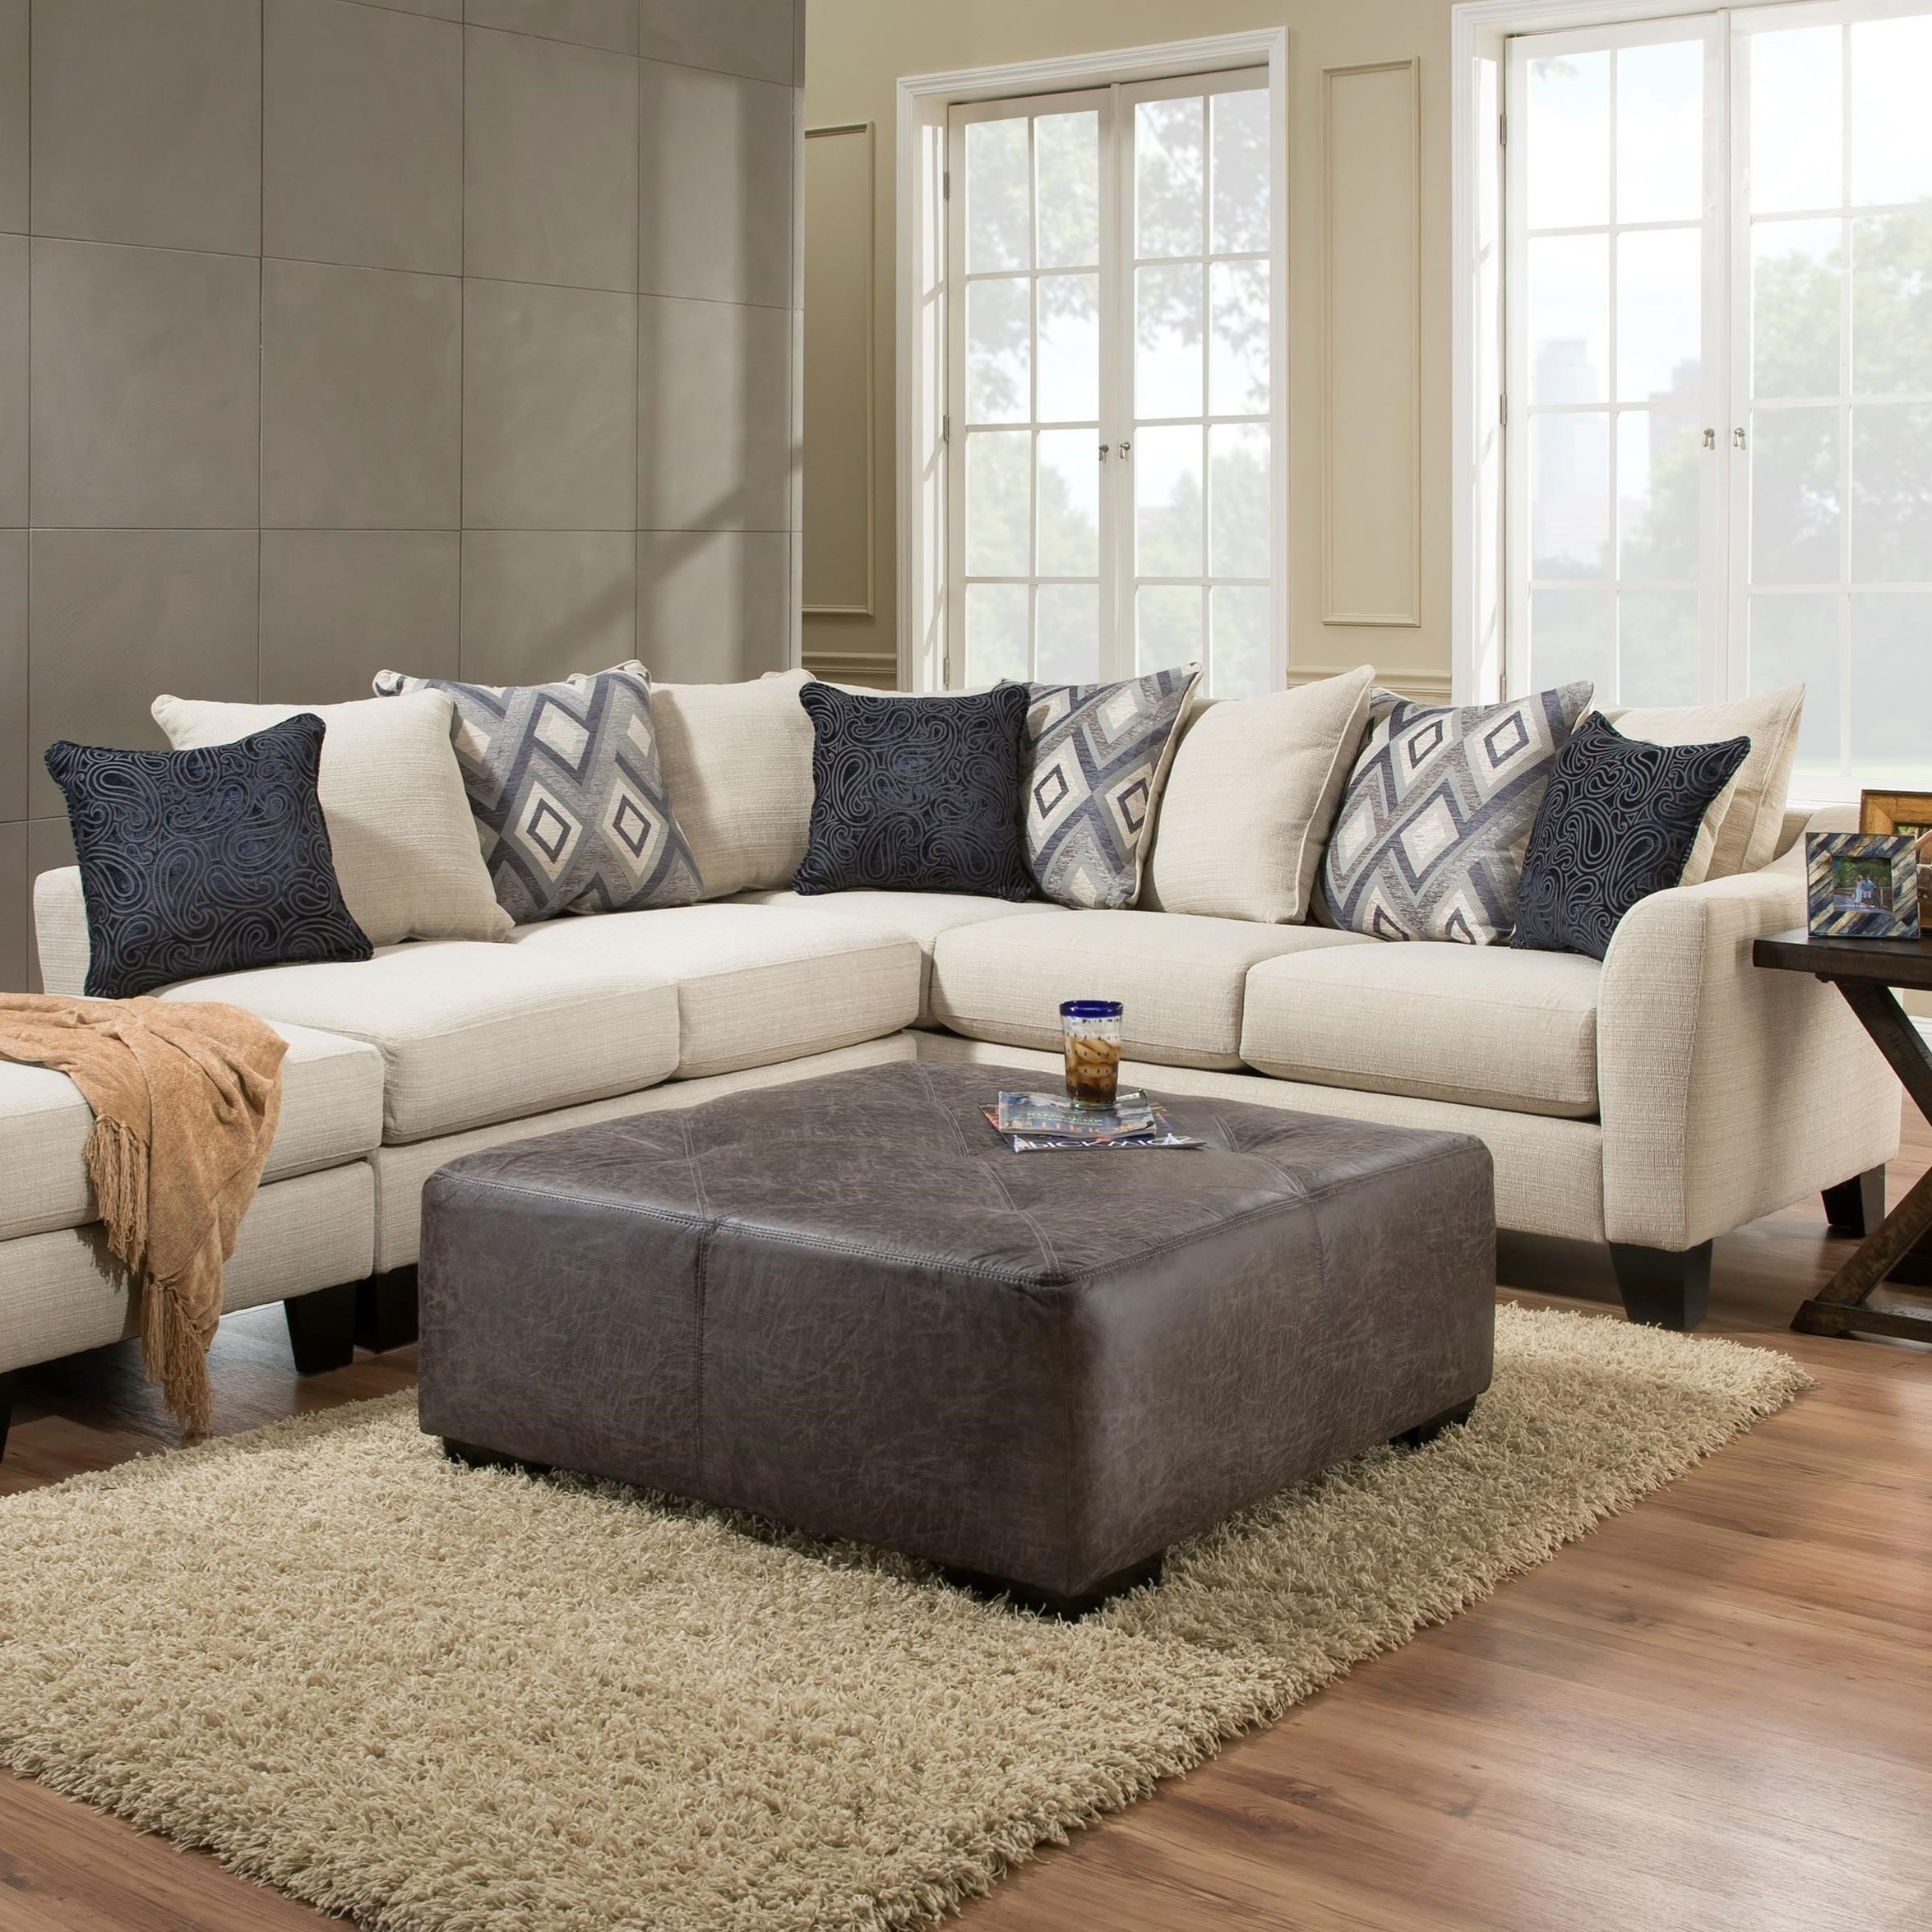 Preferred Albany R759 2 Piece Sectional Sofa In Dynasty Cream Fabric Regarding Hattiesburg Ms Sectional Sofas (View 11 of 15)